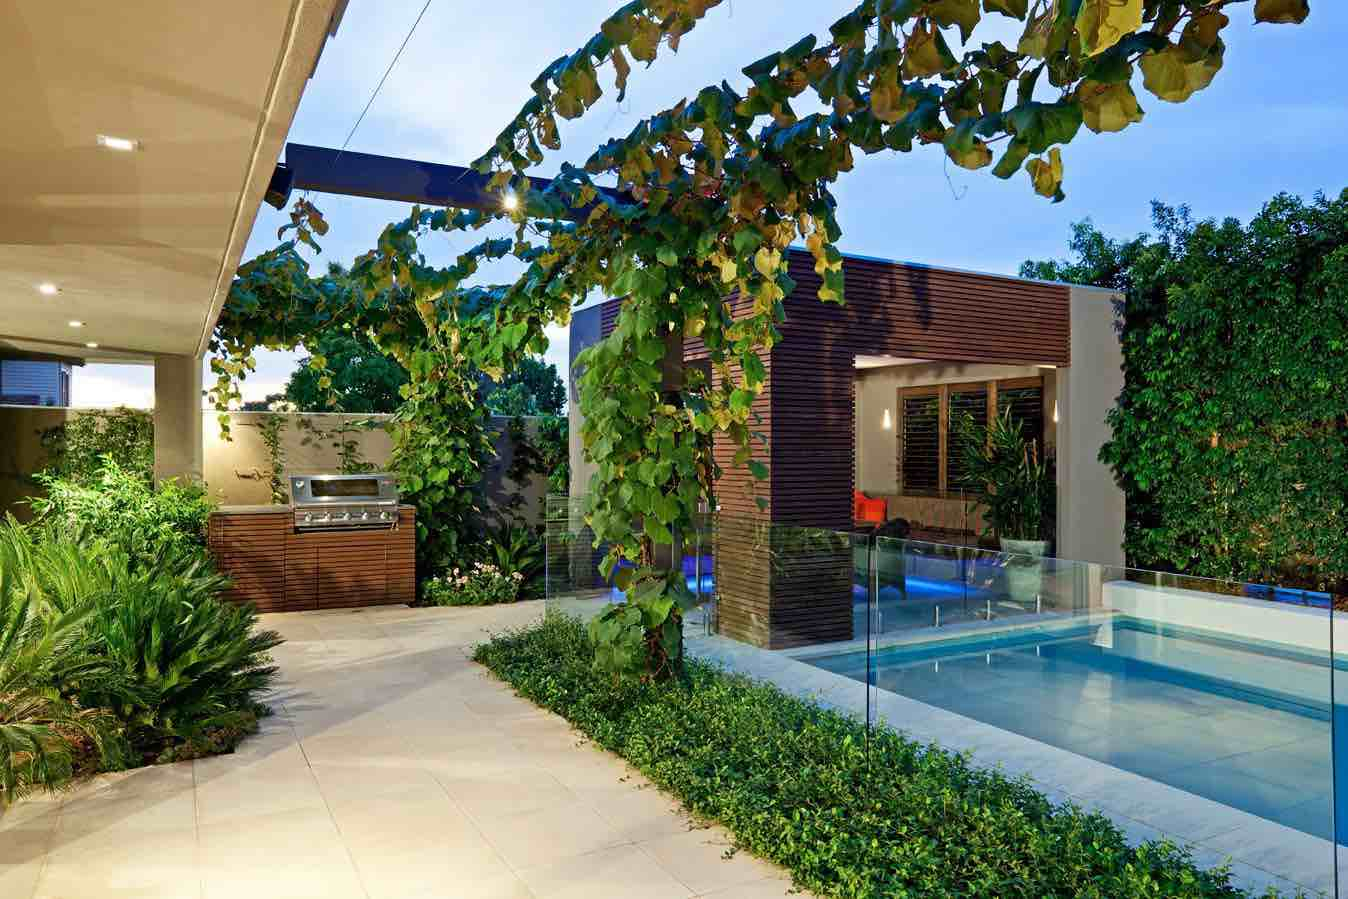 Backyard Idea temple style backyard ideas Small Backyard Home Design Idea